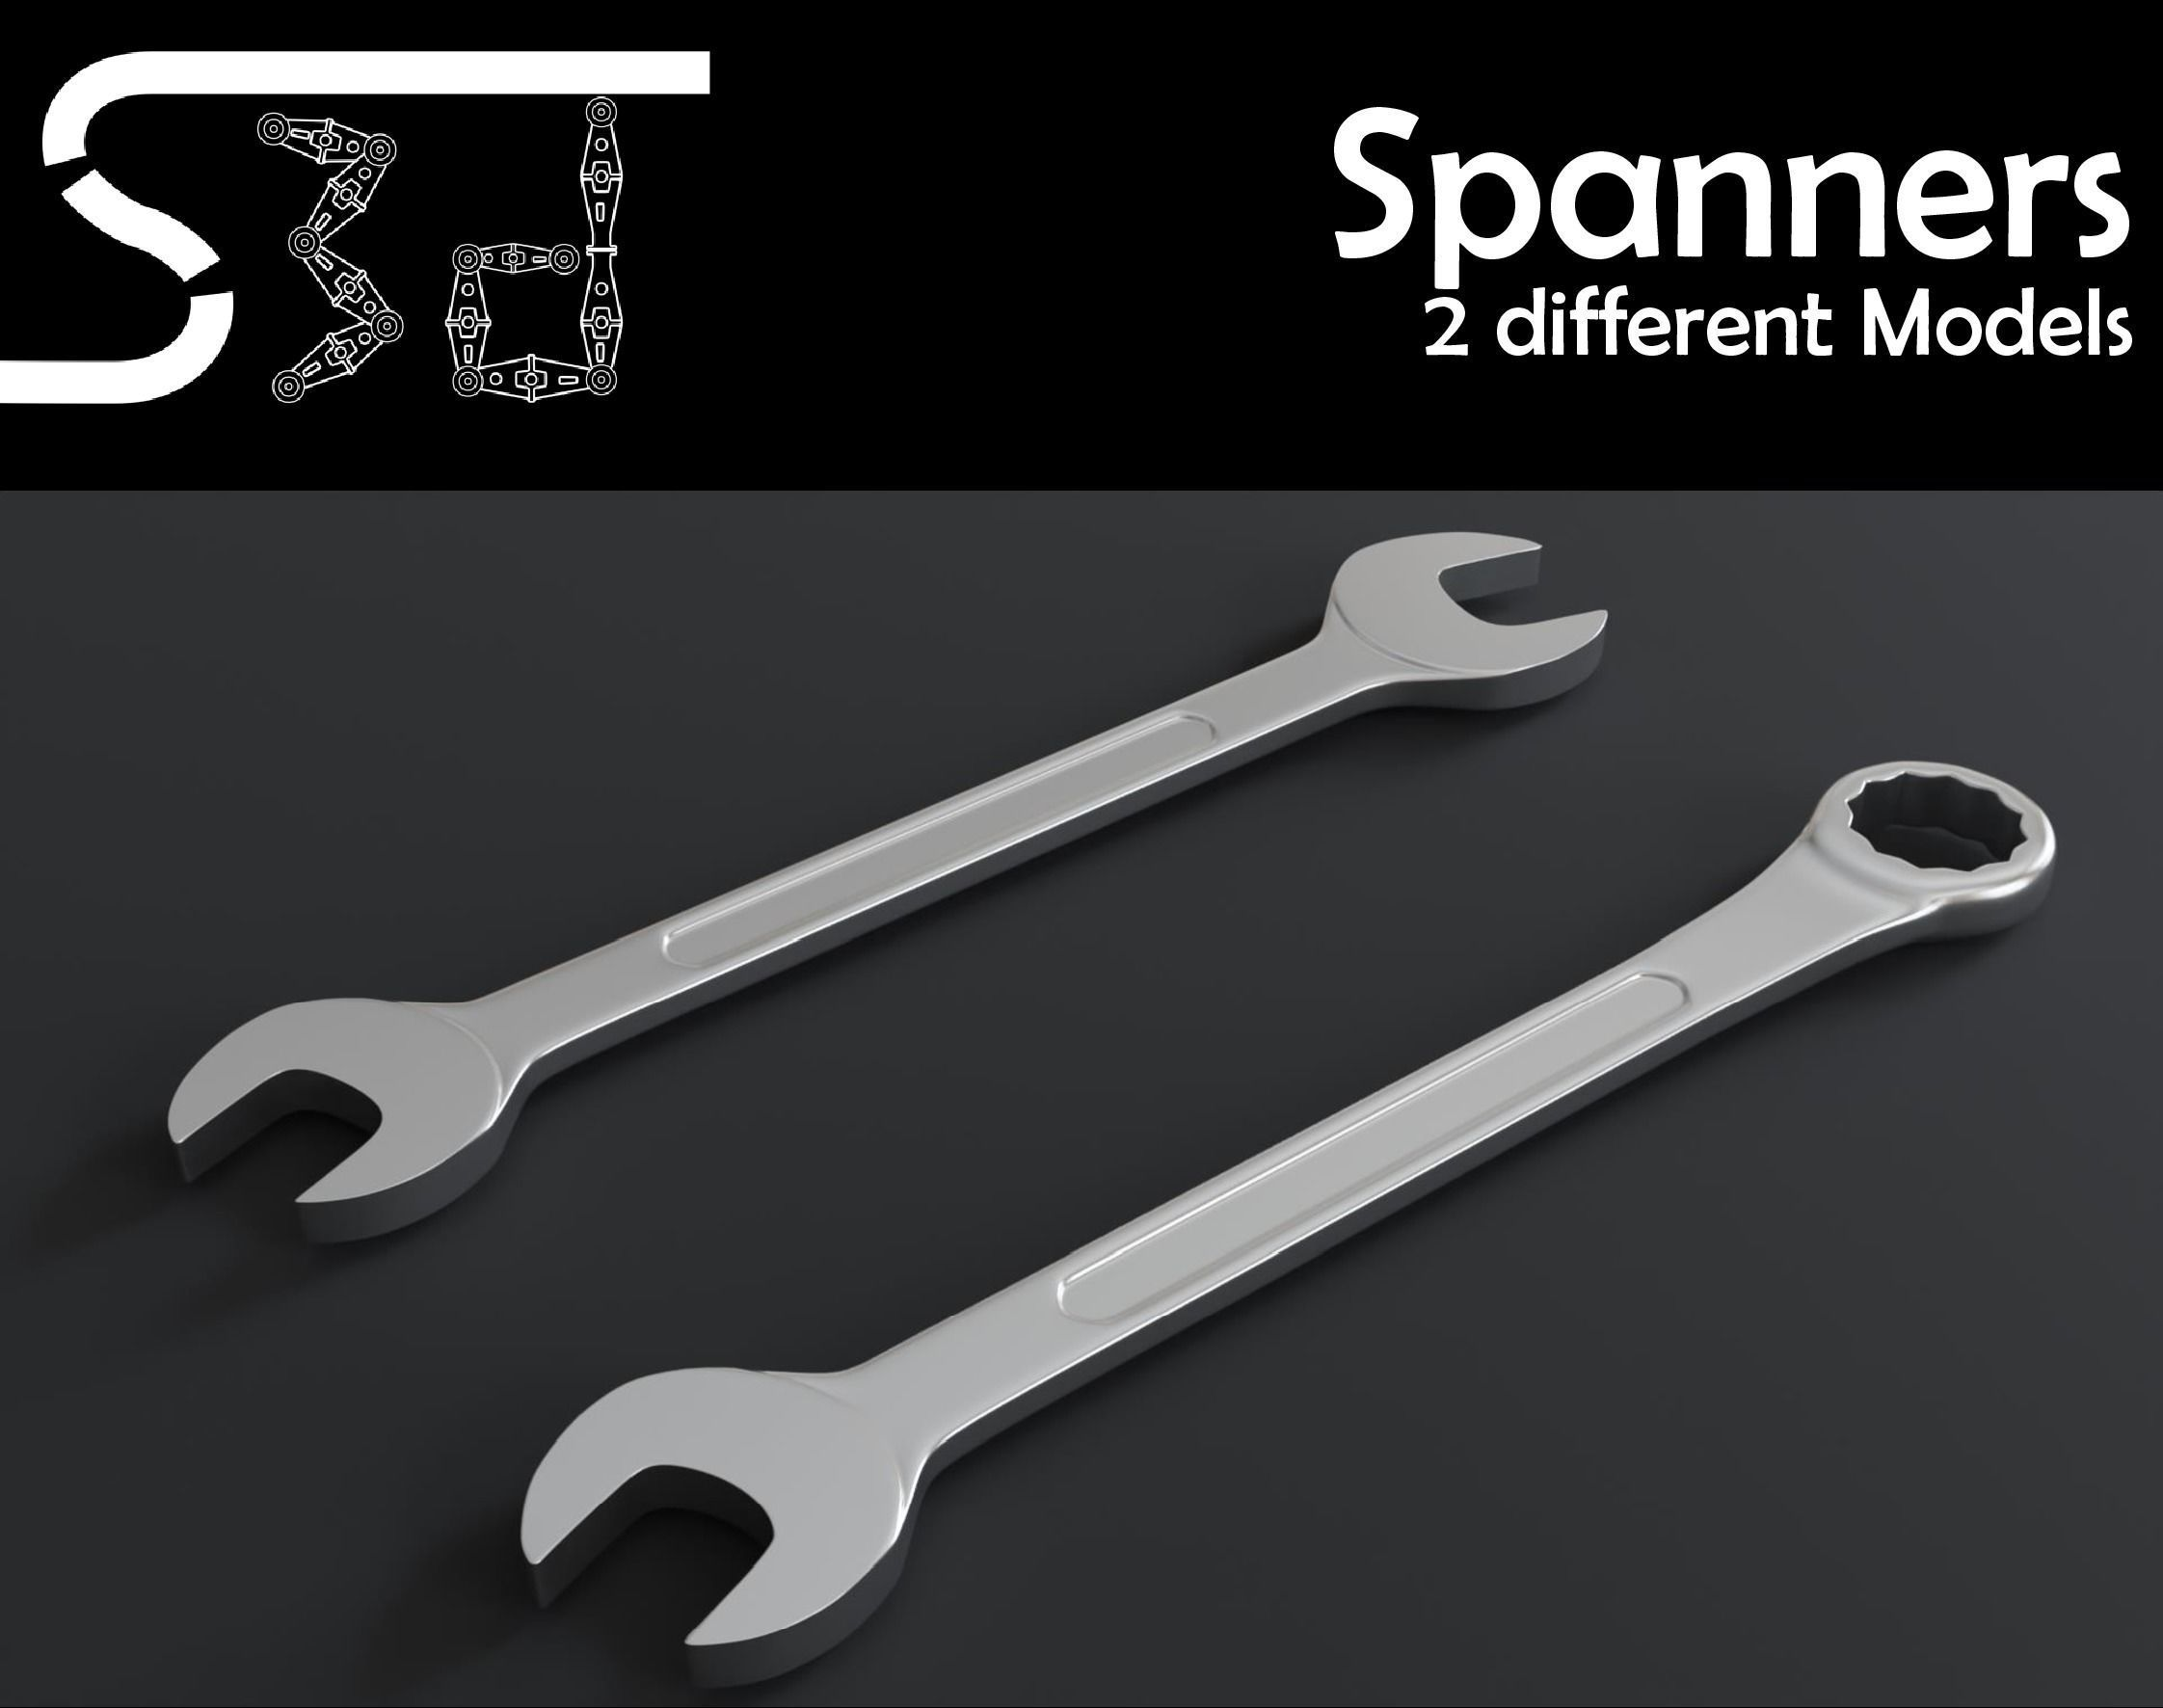 Spanner Wrench Models